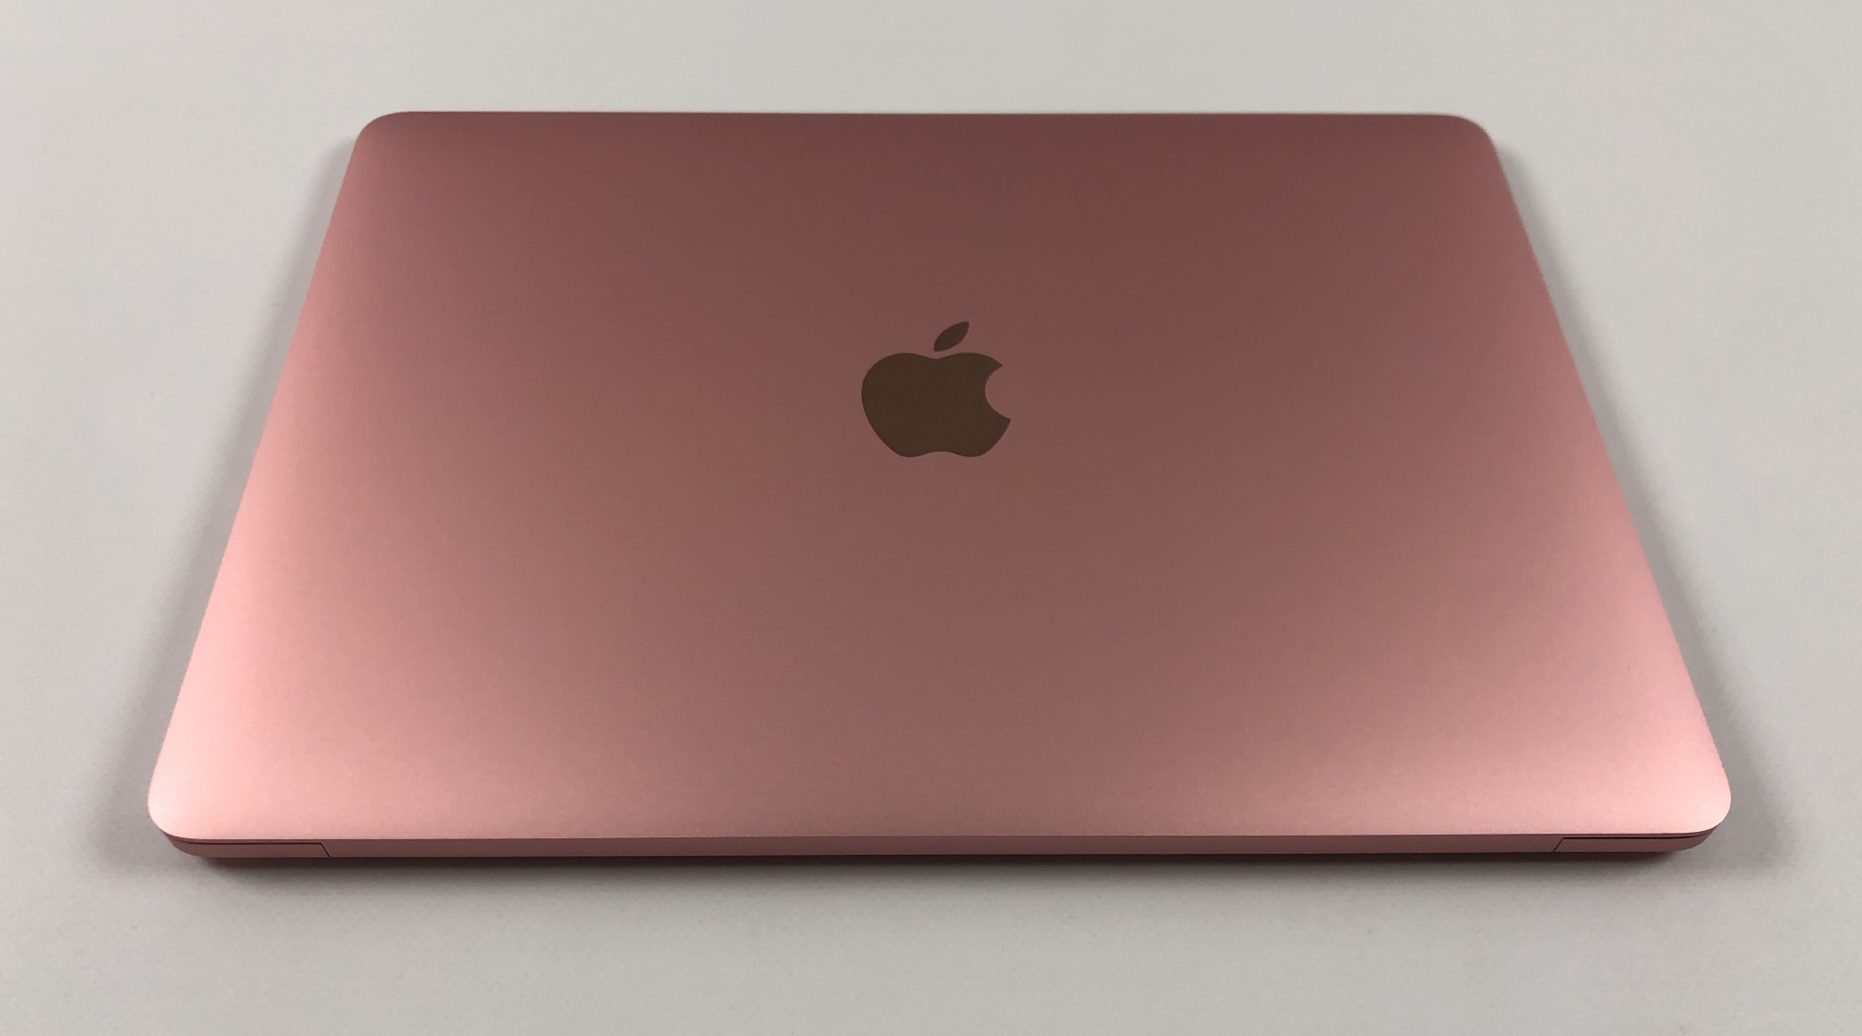 "MacBook 12"" Mid 2017 (Intel Core i5 1.3 GHz 8 GB RAM 512 GB SSD), Rose Gold, Intel Core i5 1.3 GHz, 8 GB RAM, 512 GB SSD, image 2"